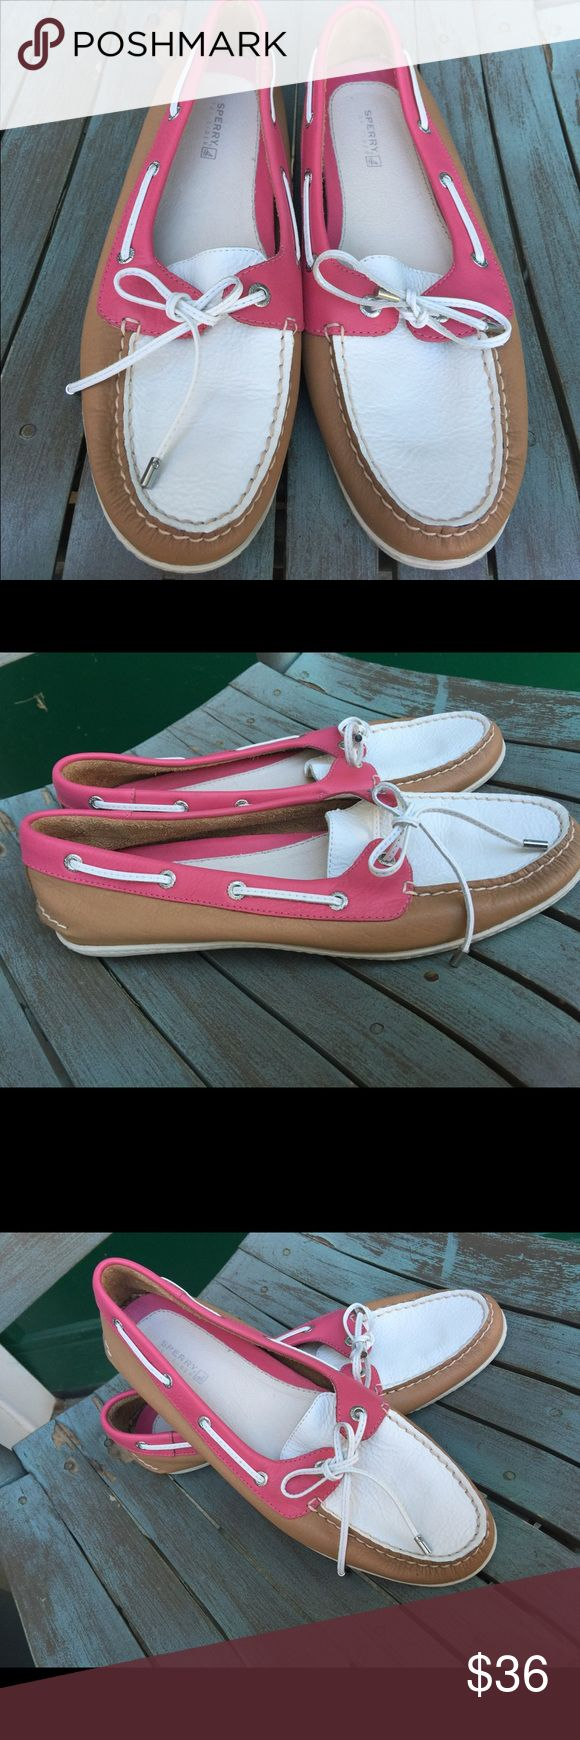 Women's Sperry Top-Sider Leather Boat Shoes 9M Women's Sperry Top-Sider Leather Boat Shoes 9M. Beautiful Pink, Tan & White. Excellent Condition Sperry Top-Sider Shoes Flats & Loafers